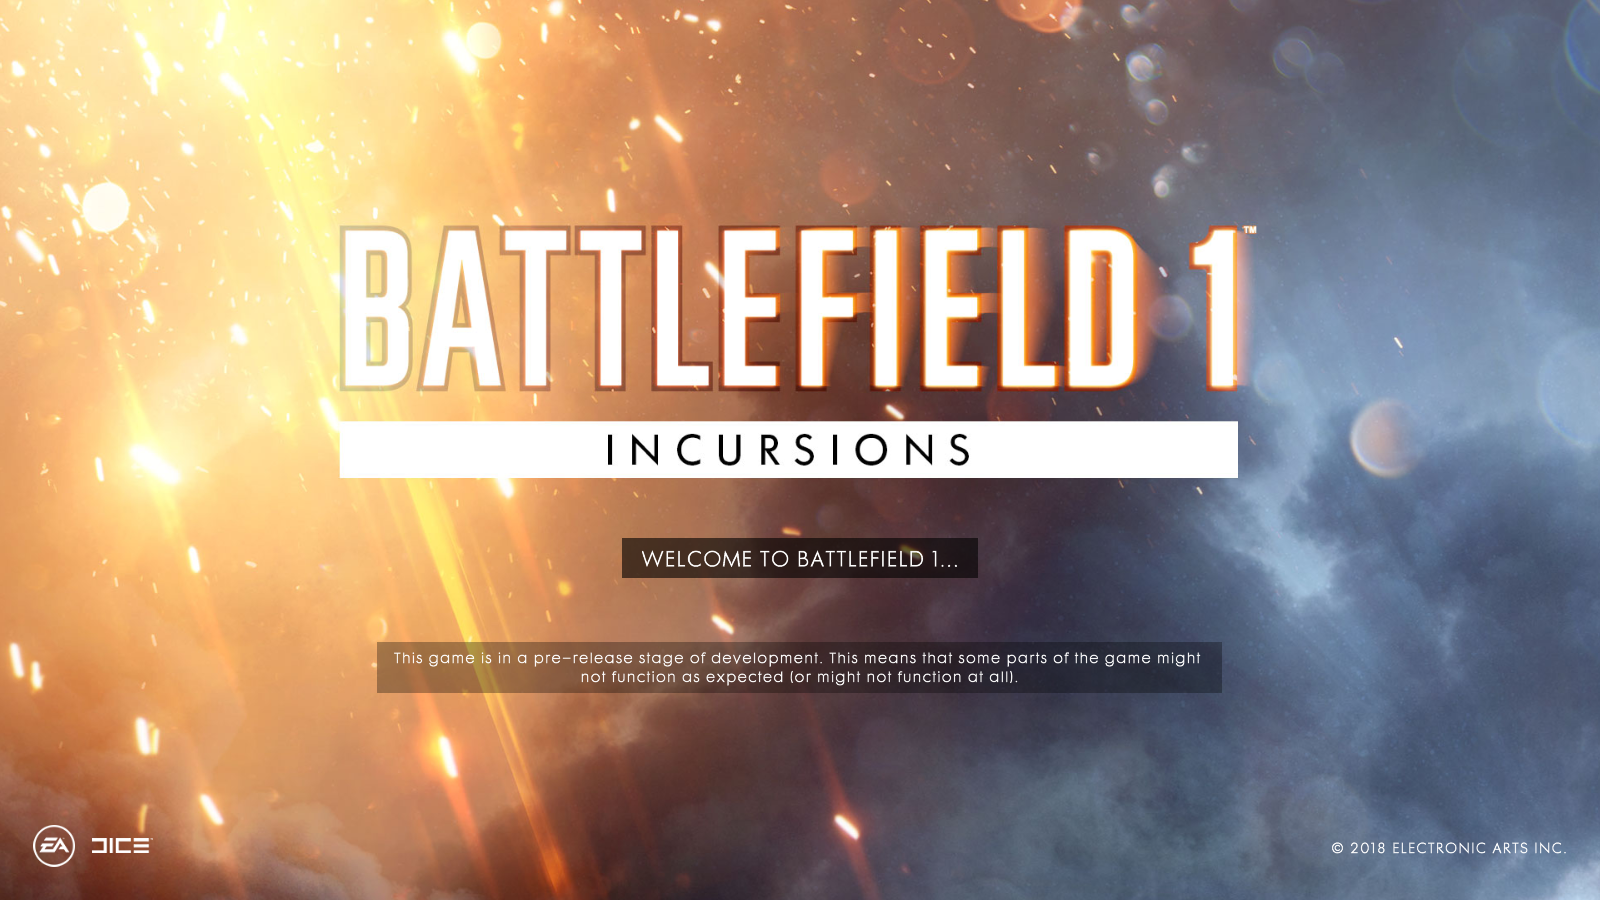 Incursions is a gamemode set to be